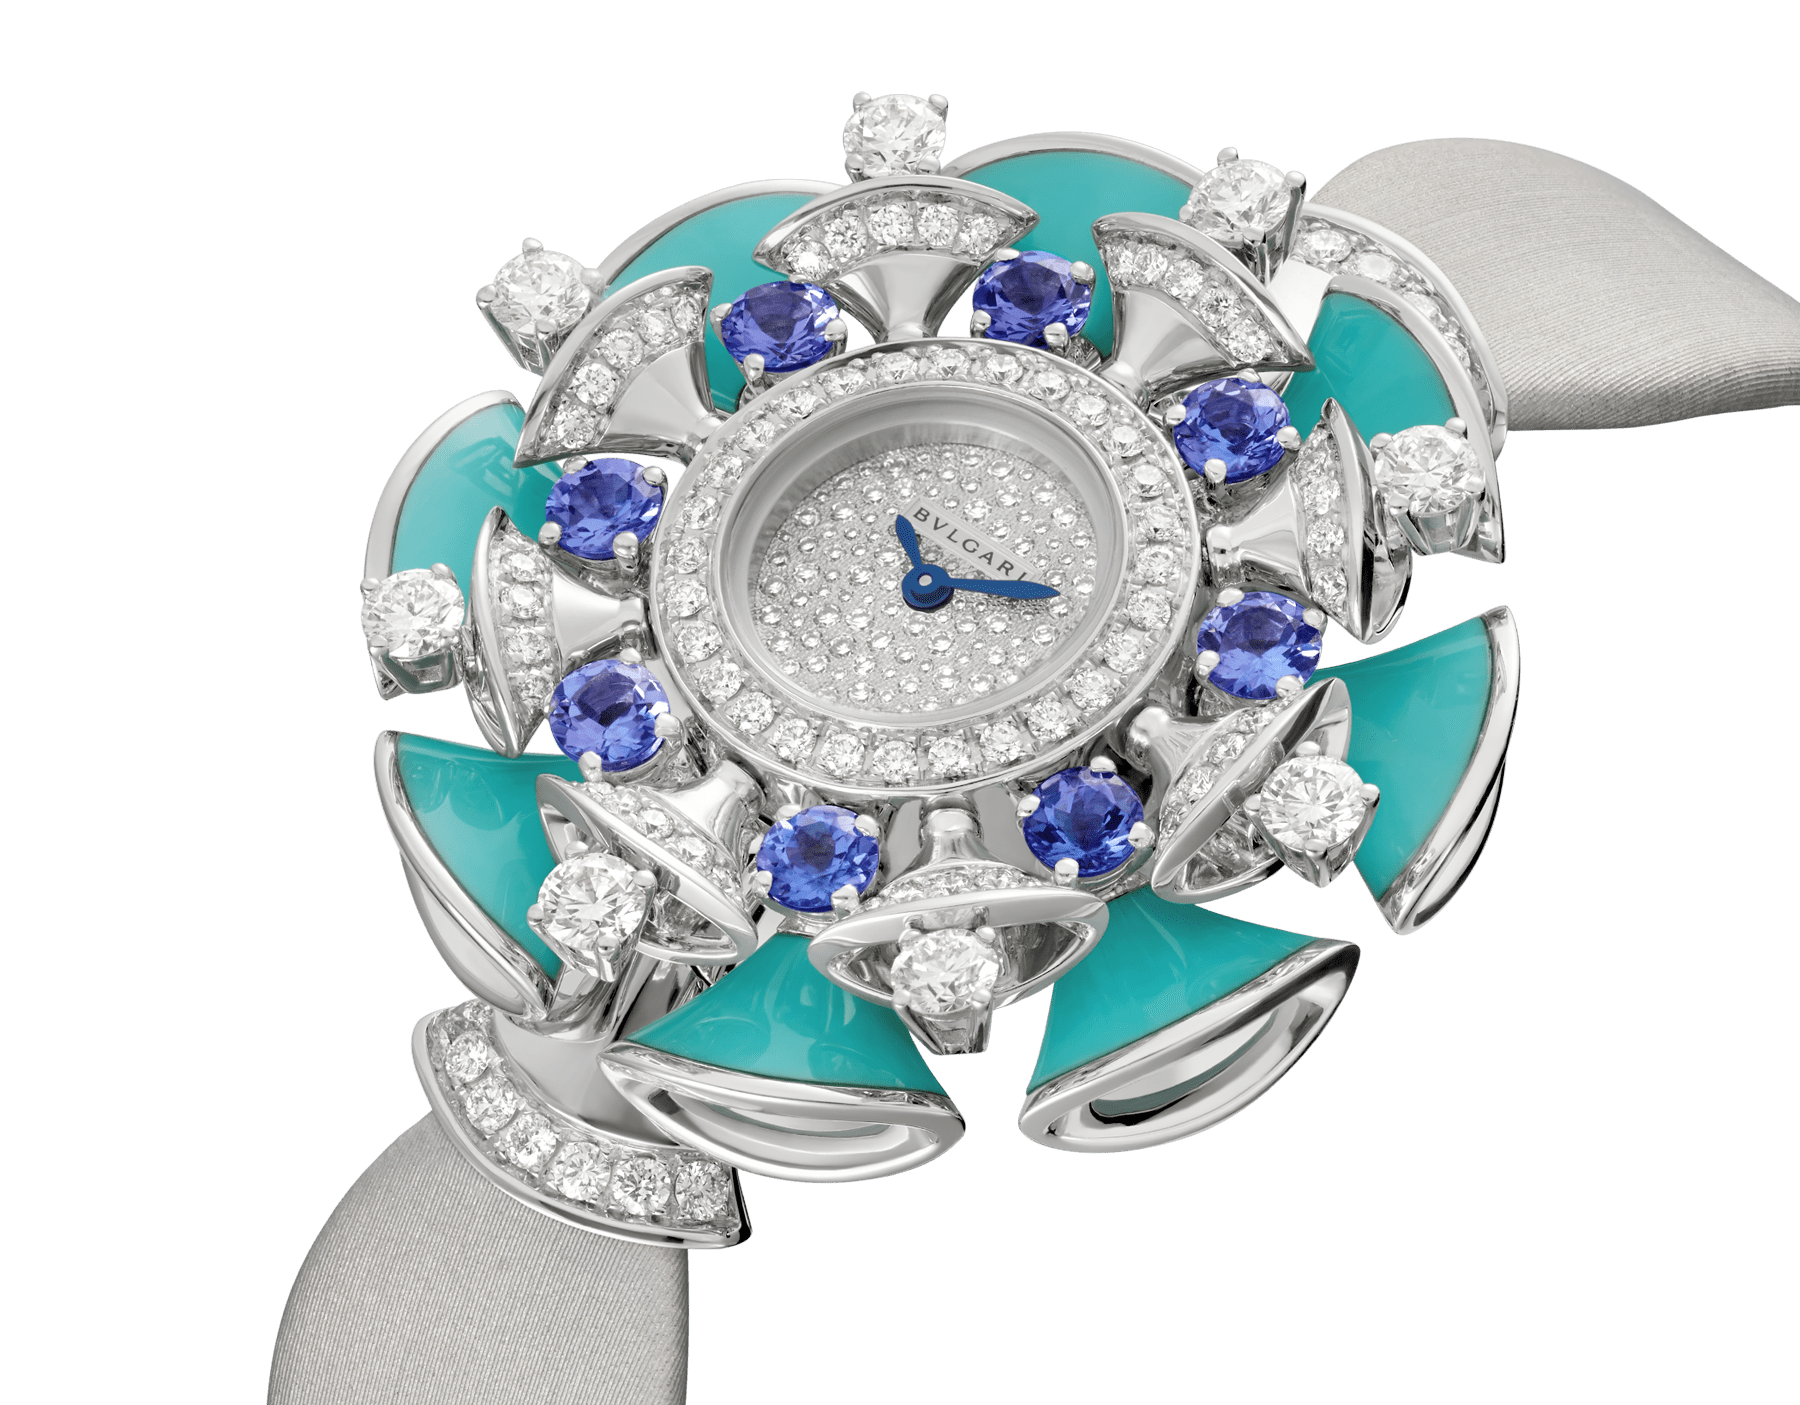 DIVAS' DREAM watch with 18 kt white gold case set with brilliant-cut diamonds, tanzanites and turquoises, snow pavé dial and grey satin bracelet 102421 image 2